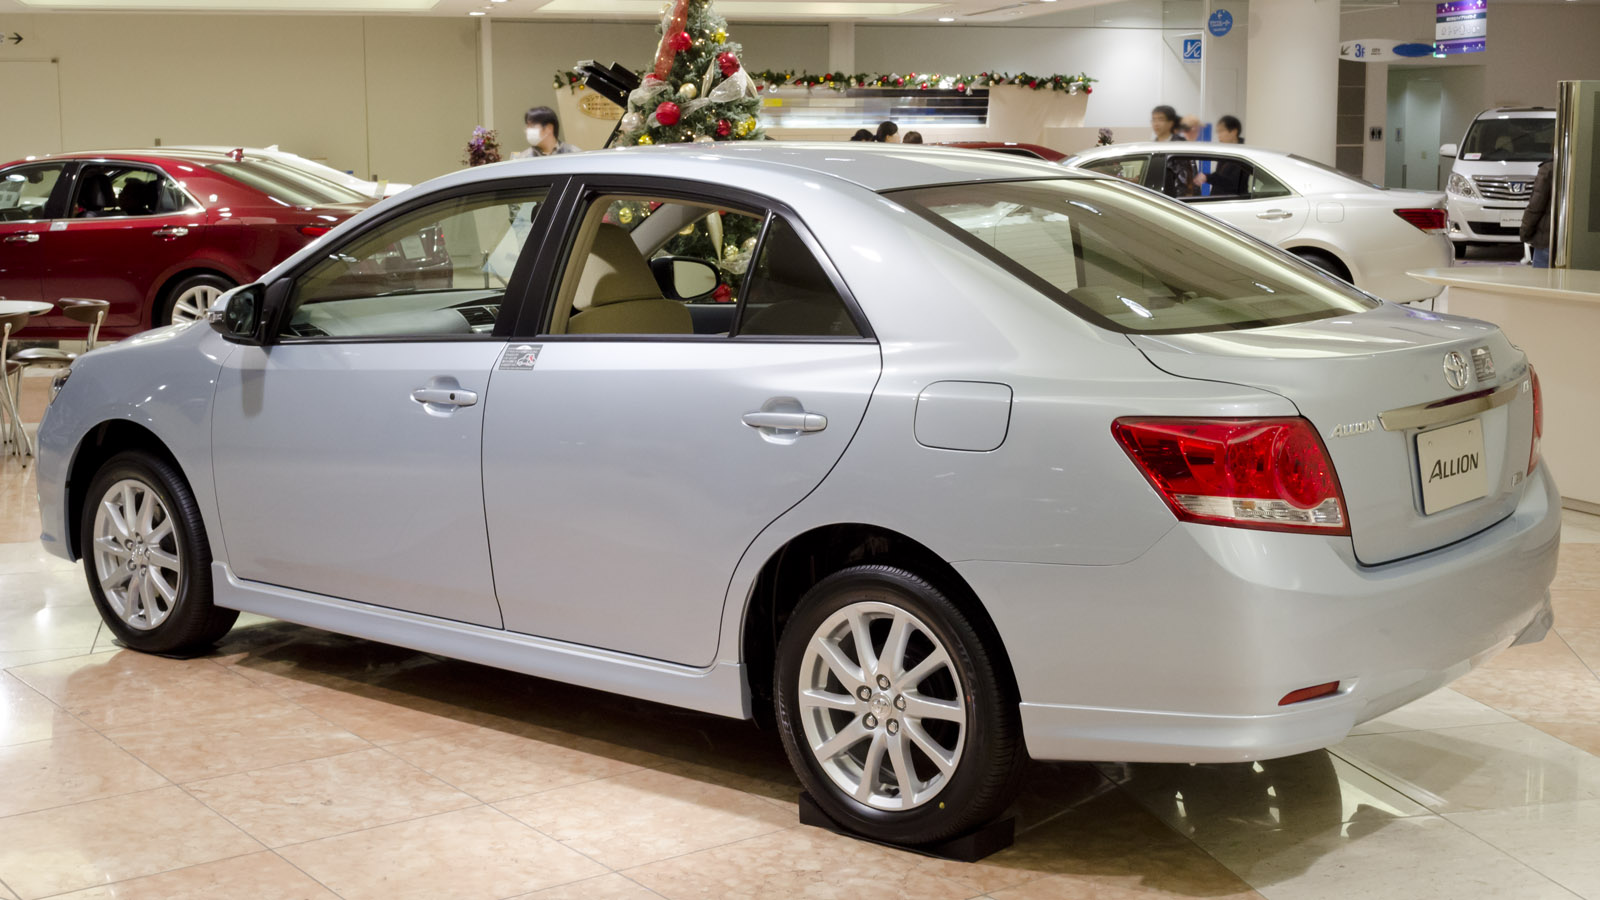 Toyota allion 2015 review amazing pictures and images look at the car